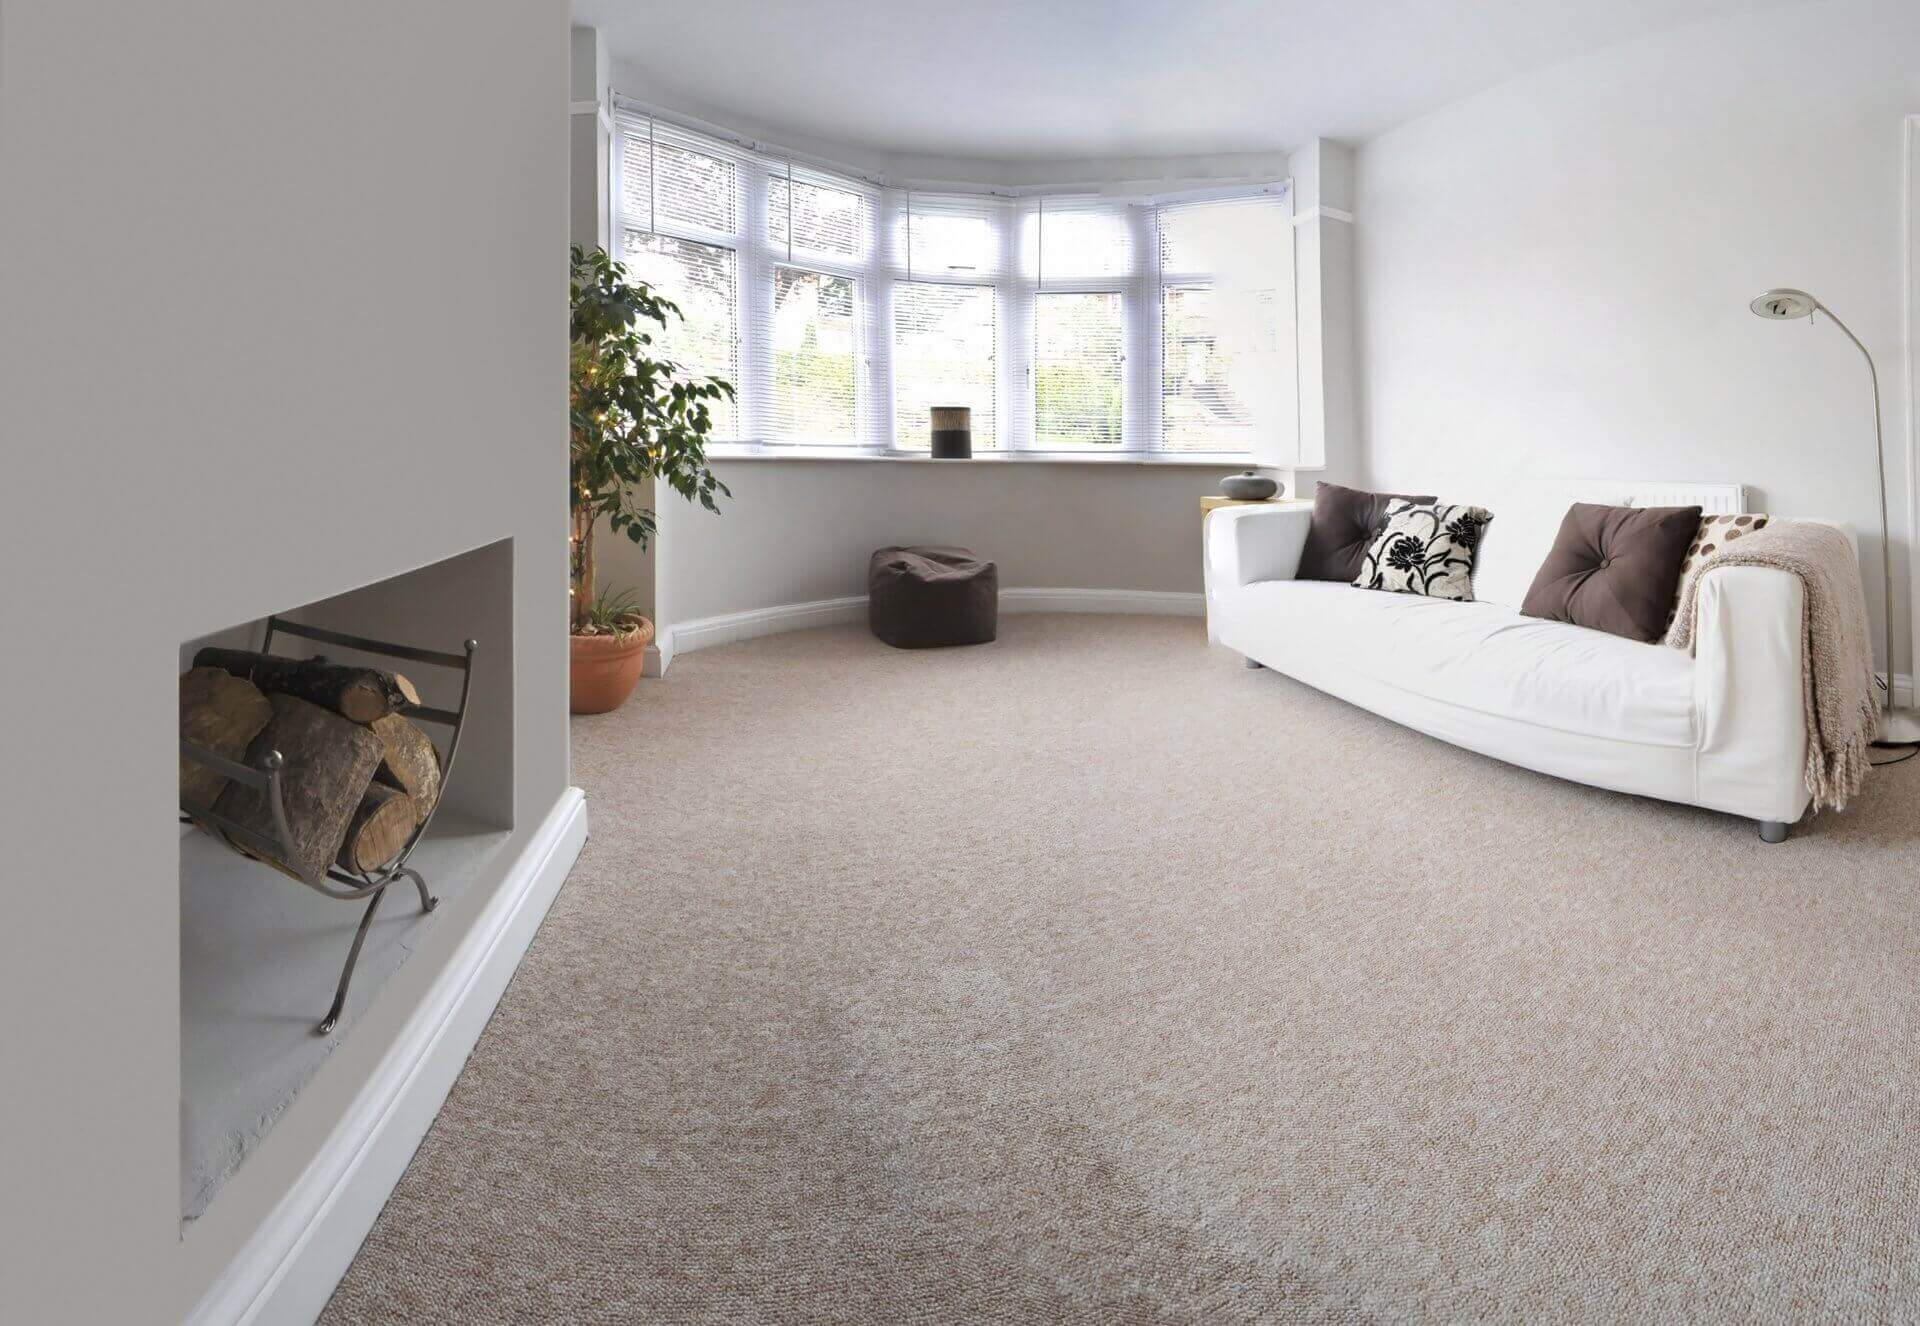 ... Perfect Carpets For Your Home With Ing Of The Highest Standard ·  Carpeted Living Room Ideas Living Room Contemporary ...